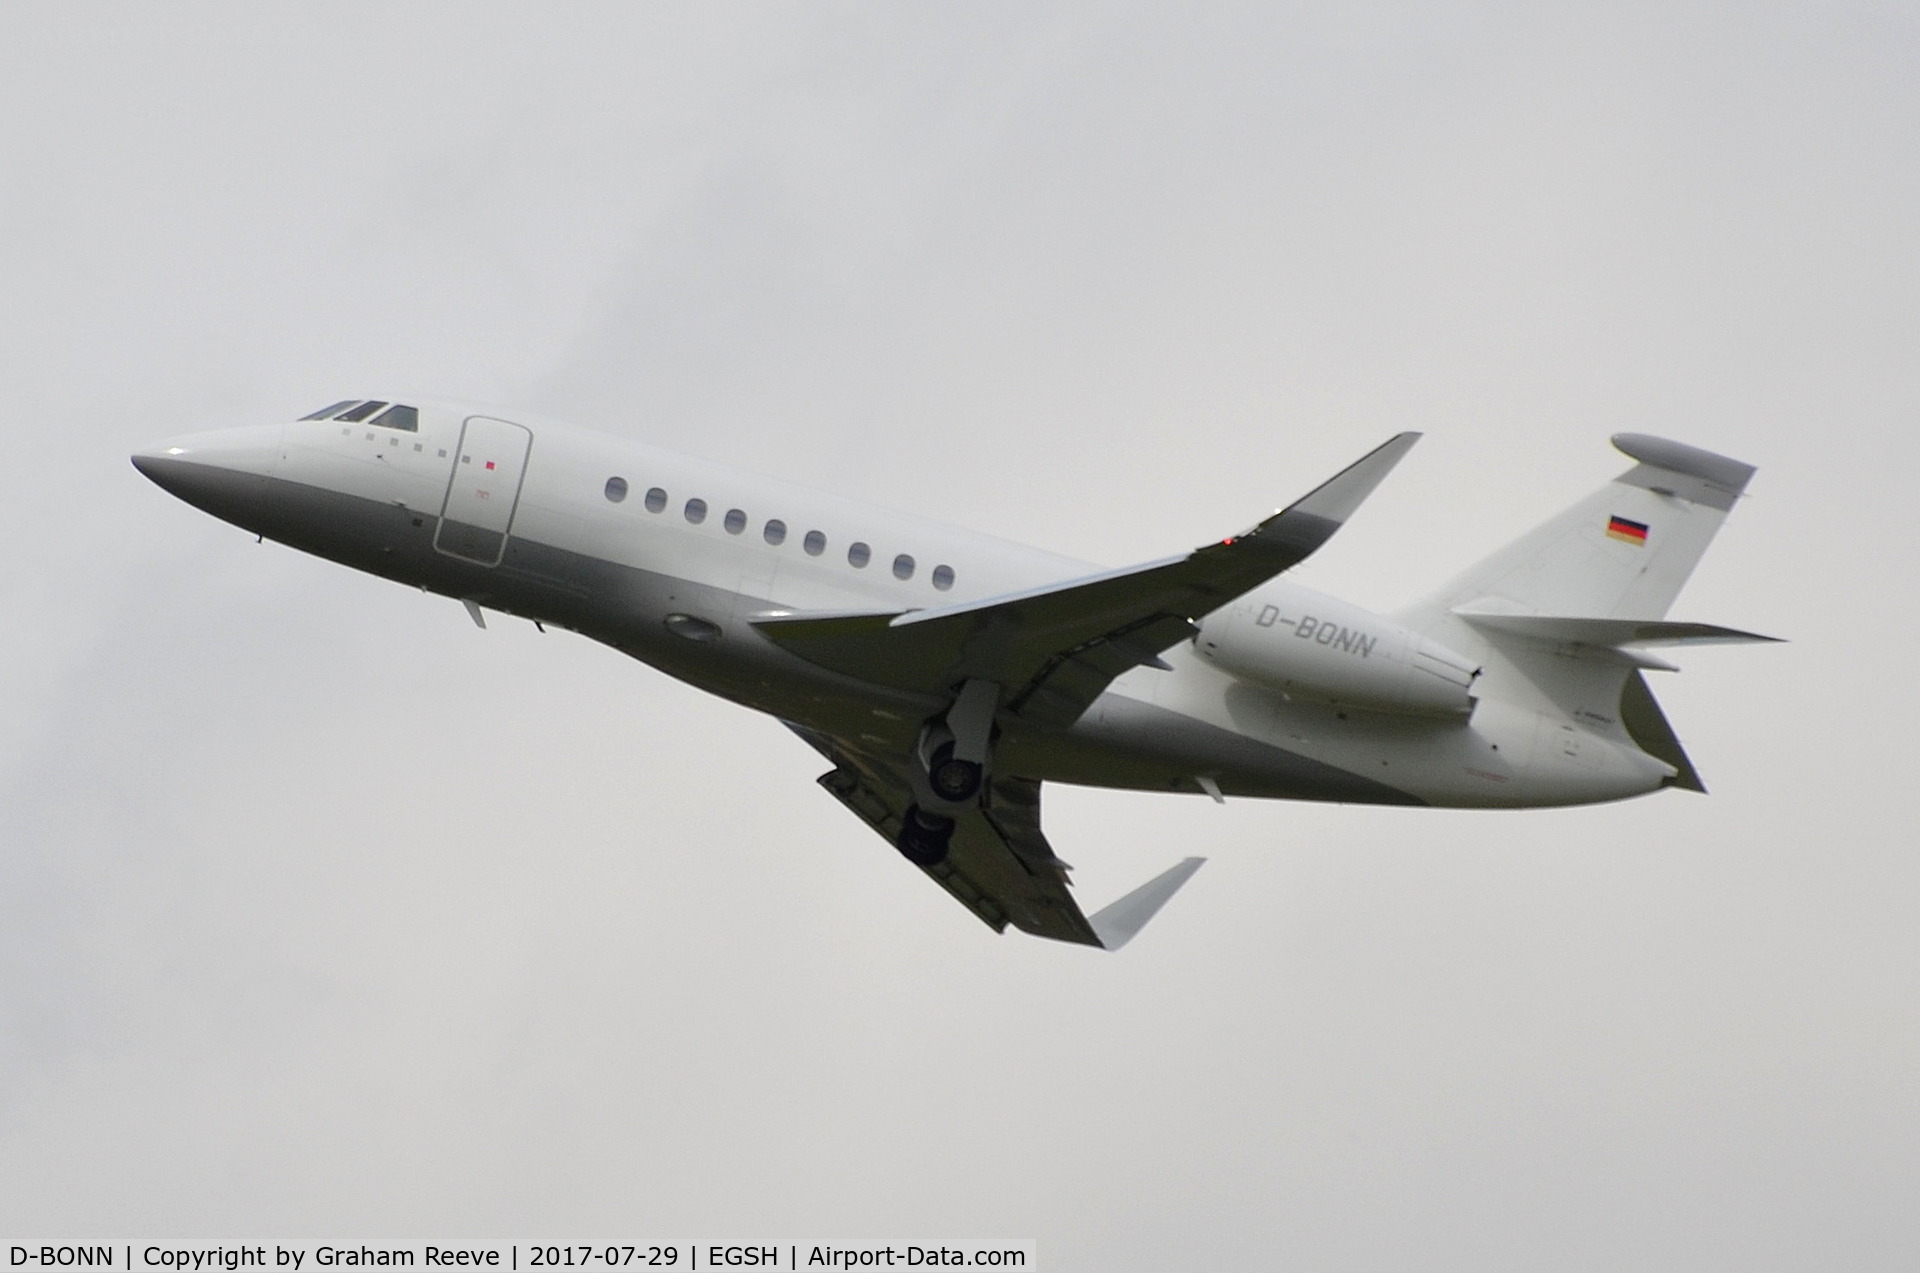 D-BONN, 2007 Dassault Falcon 2000EX C/N 118, Departing from Norwich.